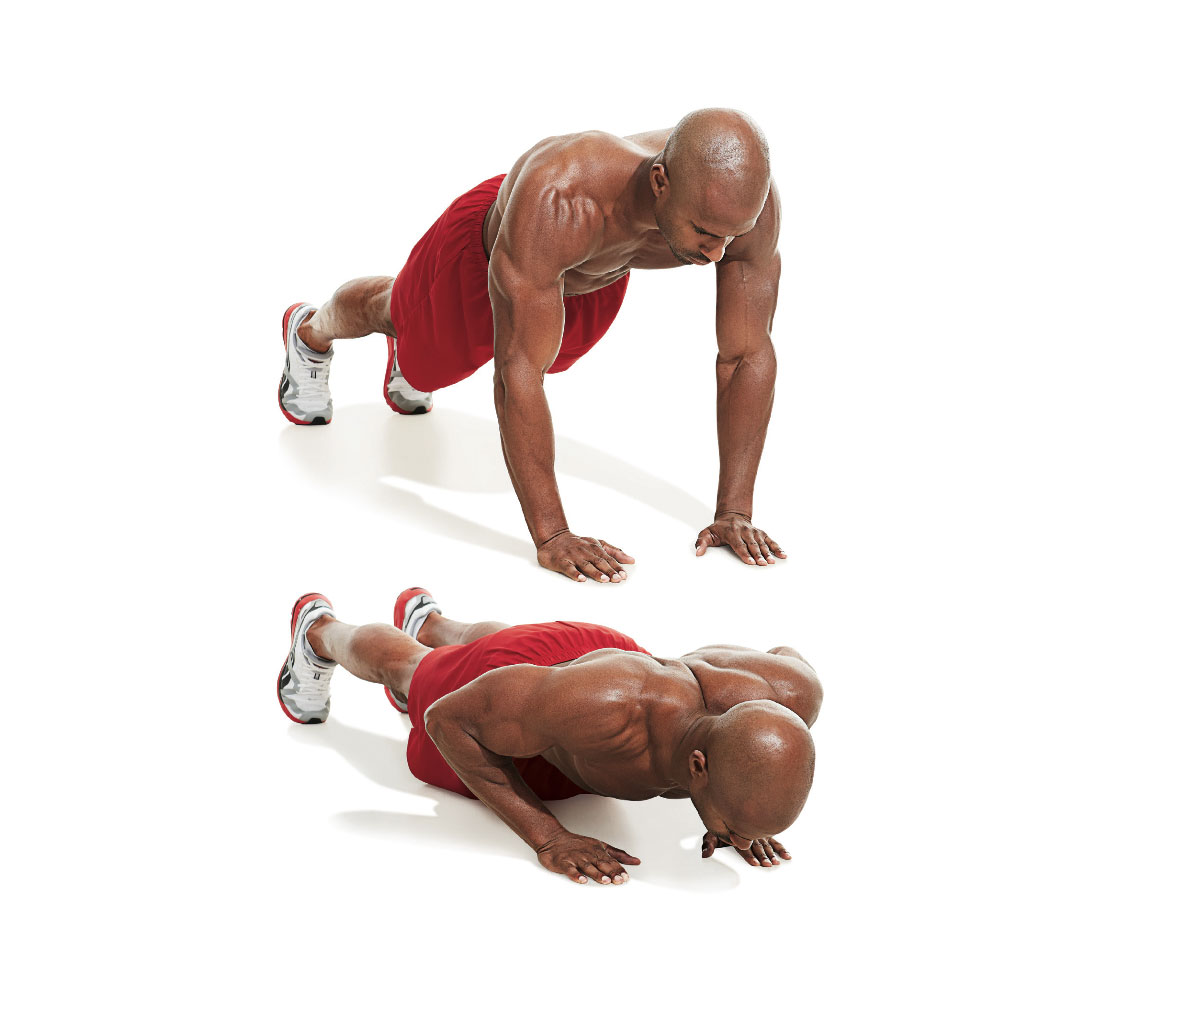 Triceps Exercises: The 15 Best Triceps Exercises of All Time